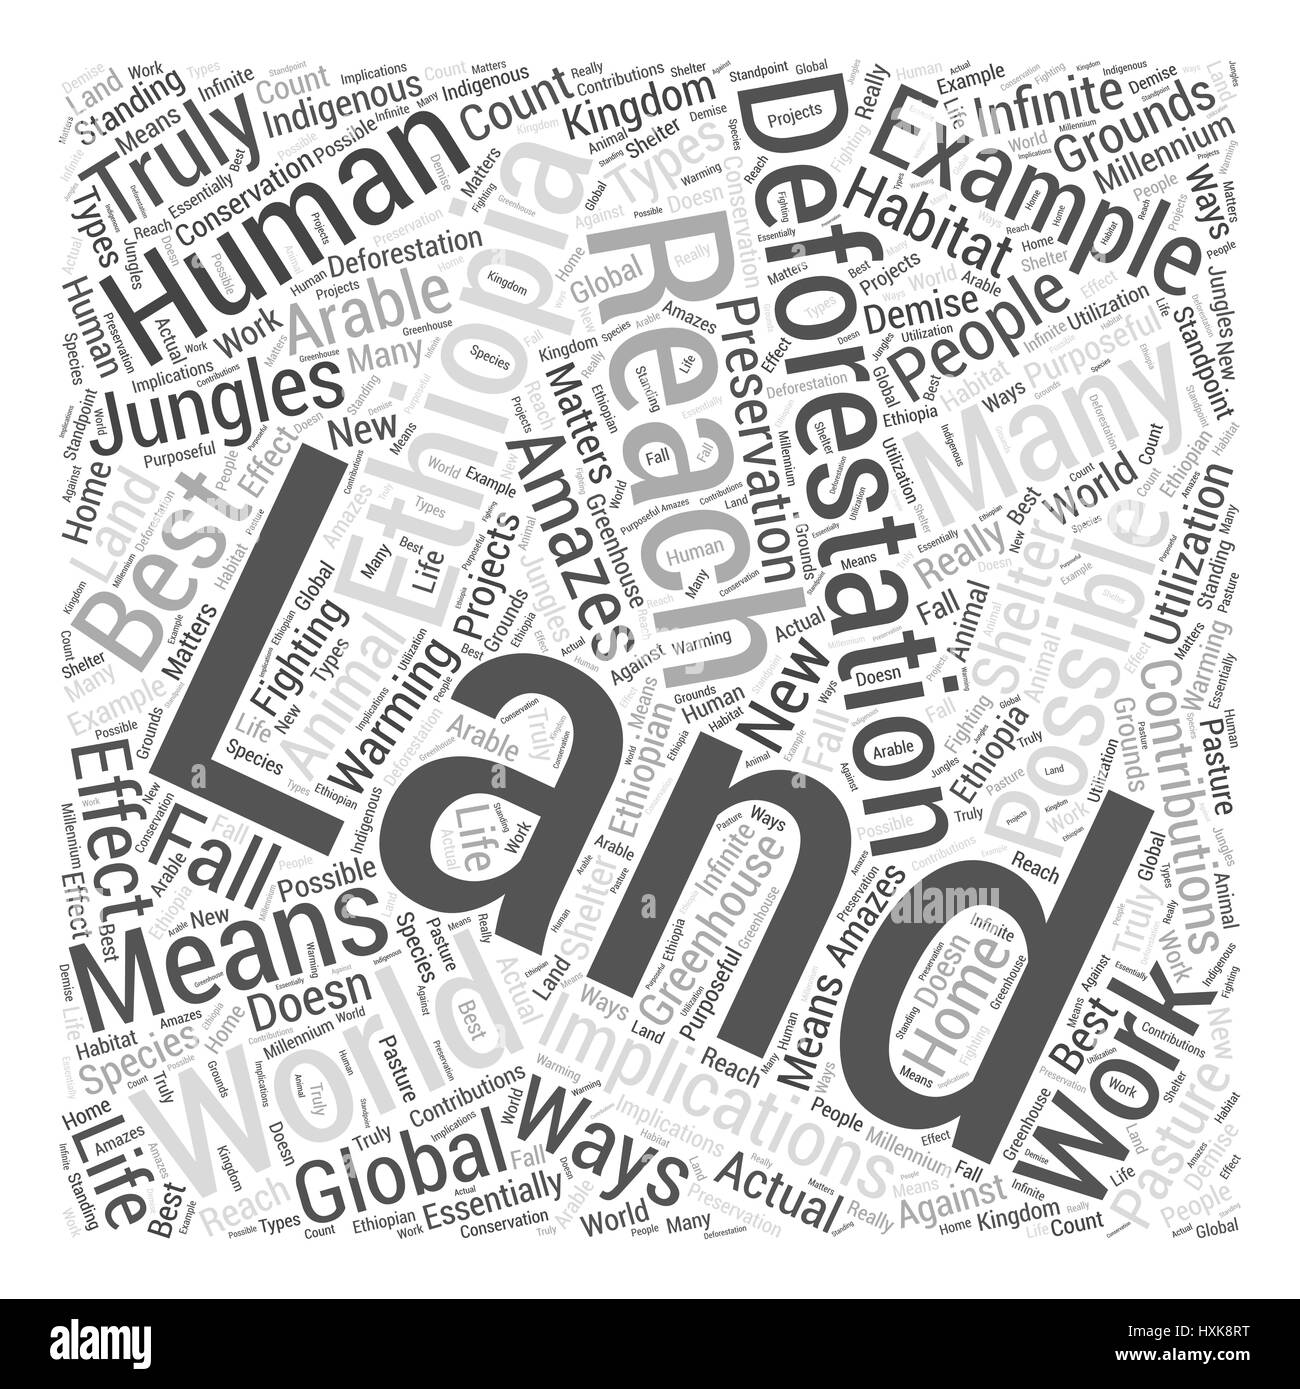 The Implications Of Deforestation In Ethiopia Word Cloud Concept - Stock Image